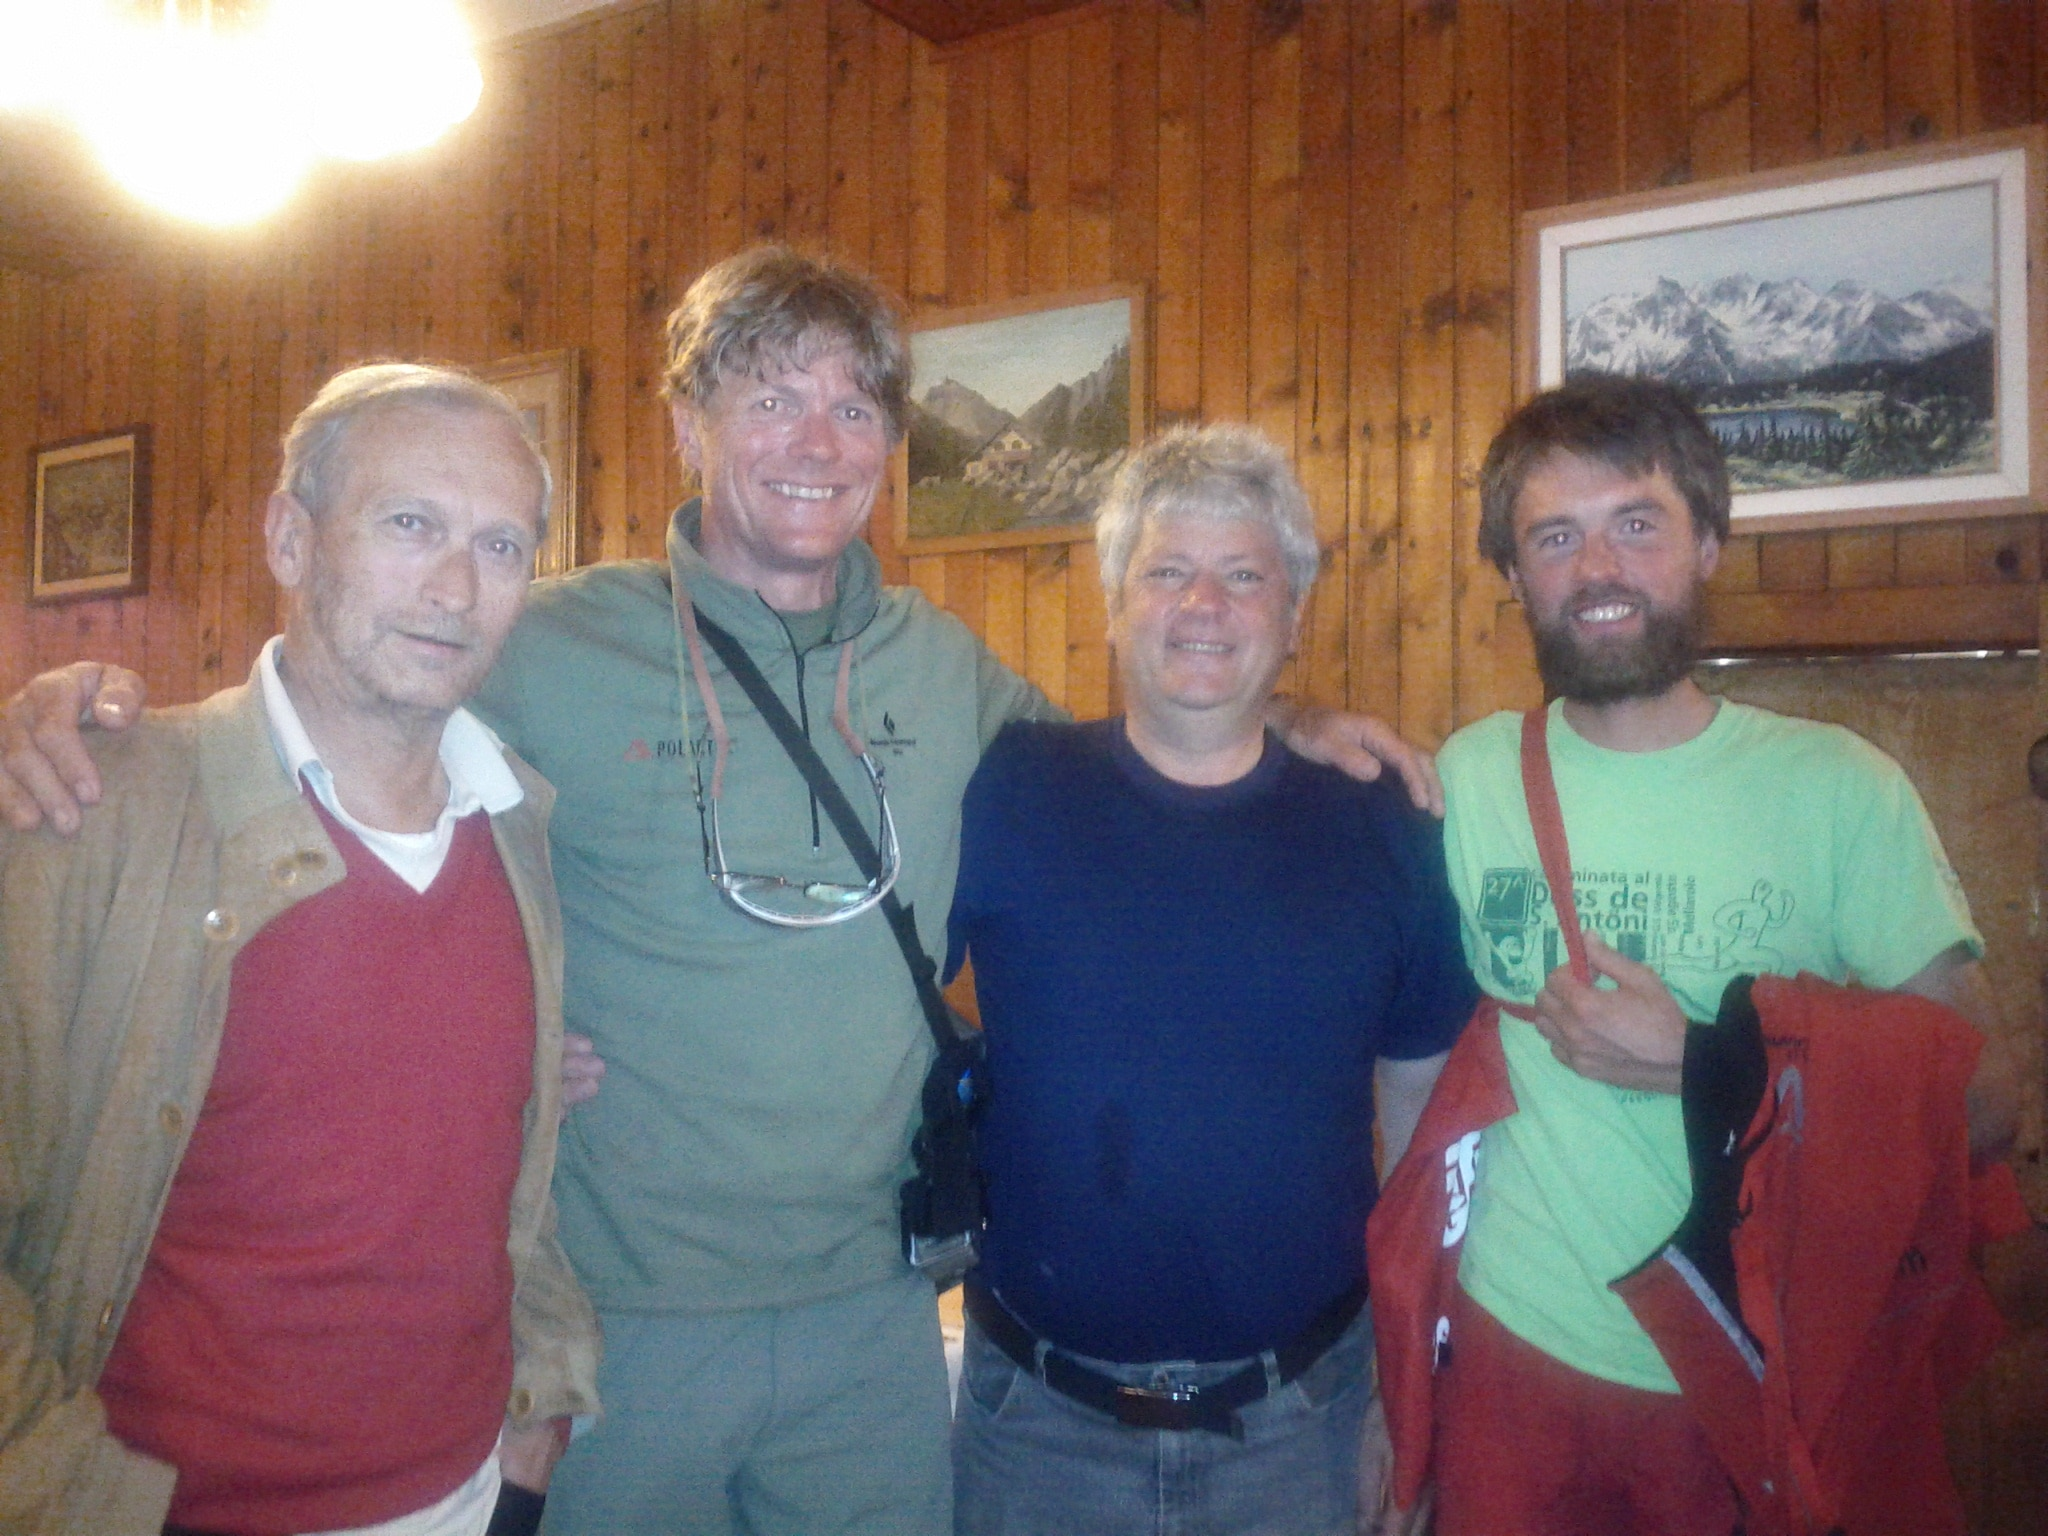 On the left is Angelo Schena, just right of me is the chef and owner of the Hotel Chiareggio, Livio Lenatti, and on the far right is Beno, my climbing partner.